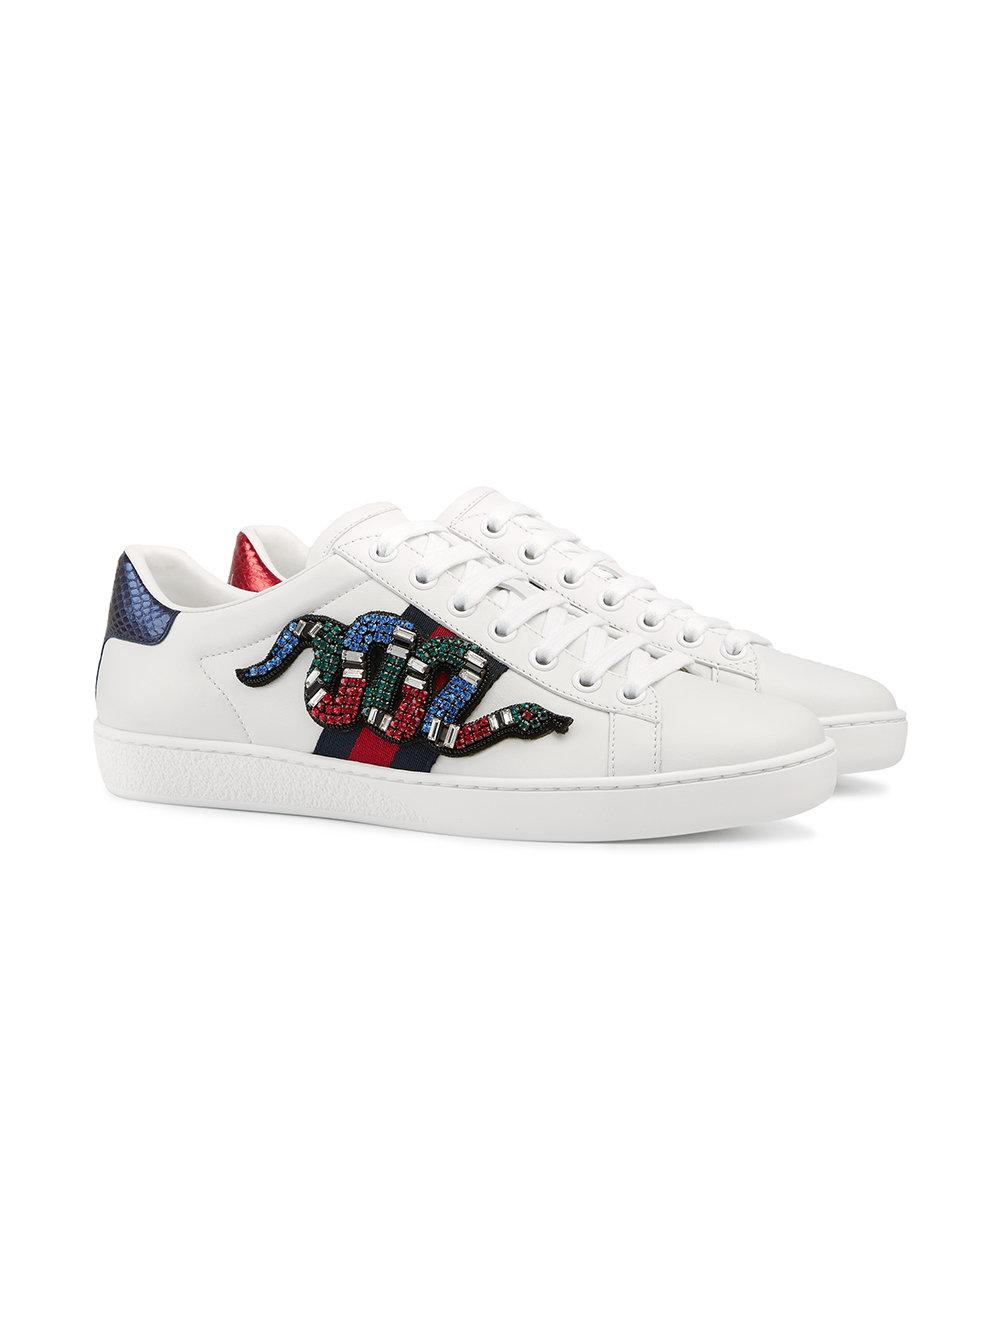 a5c7268e8 Gucci Ace Embroidered Sneakers in White - Lyst